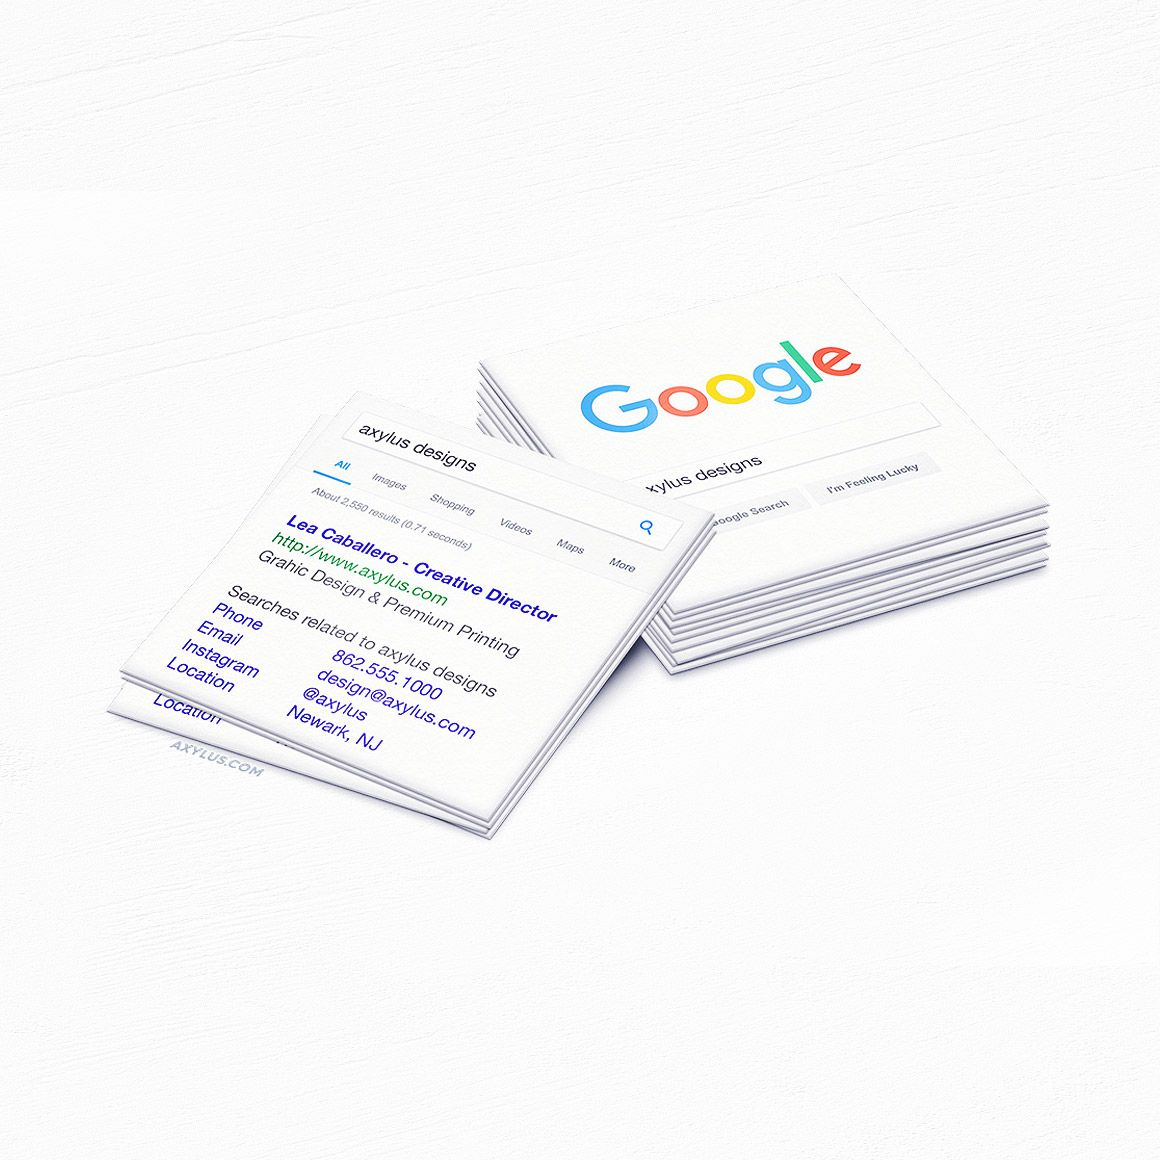 The Amusing Google Business Cards Square Mini Cards Seo Marketing With Google Searc In 2020 Google Business Card Business Card Template Word Business Card Template